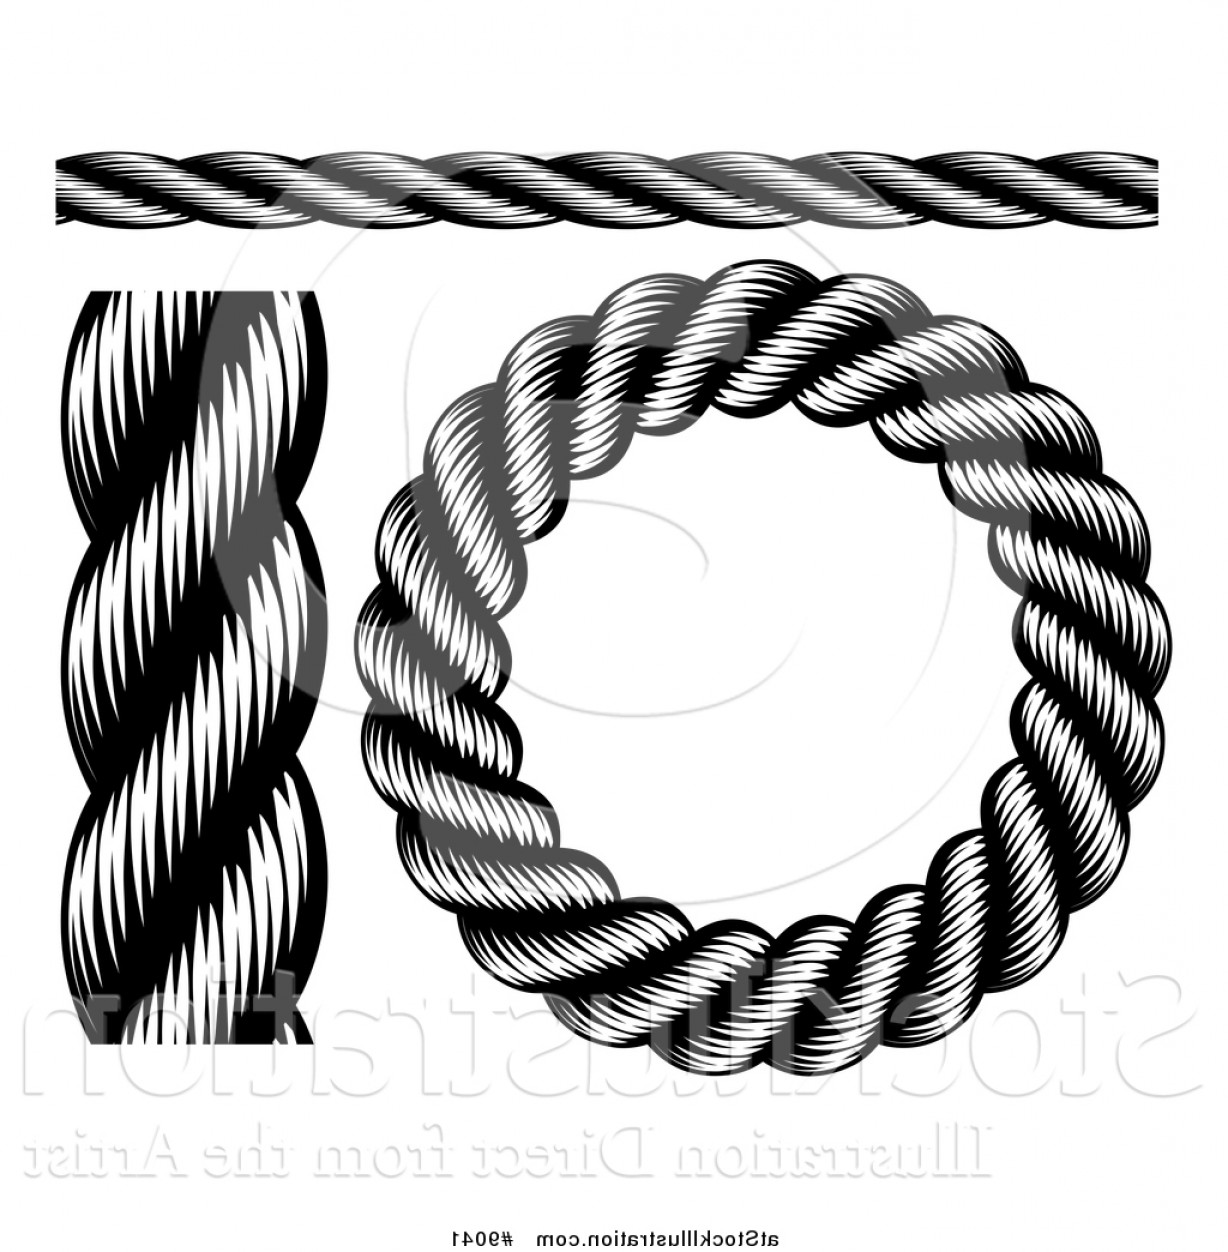 Design Vector Image Of Rope: Vector Illustration Of Black And White Woodcut Or Engraved Nautical Rope Design Elements By Atstockillustration